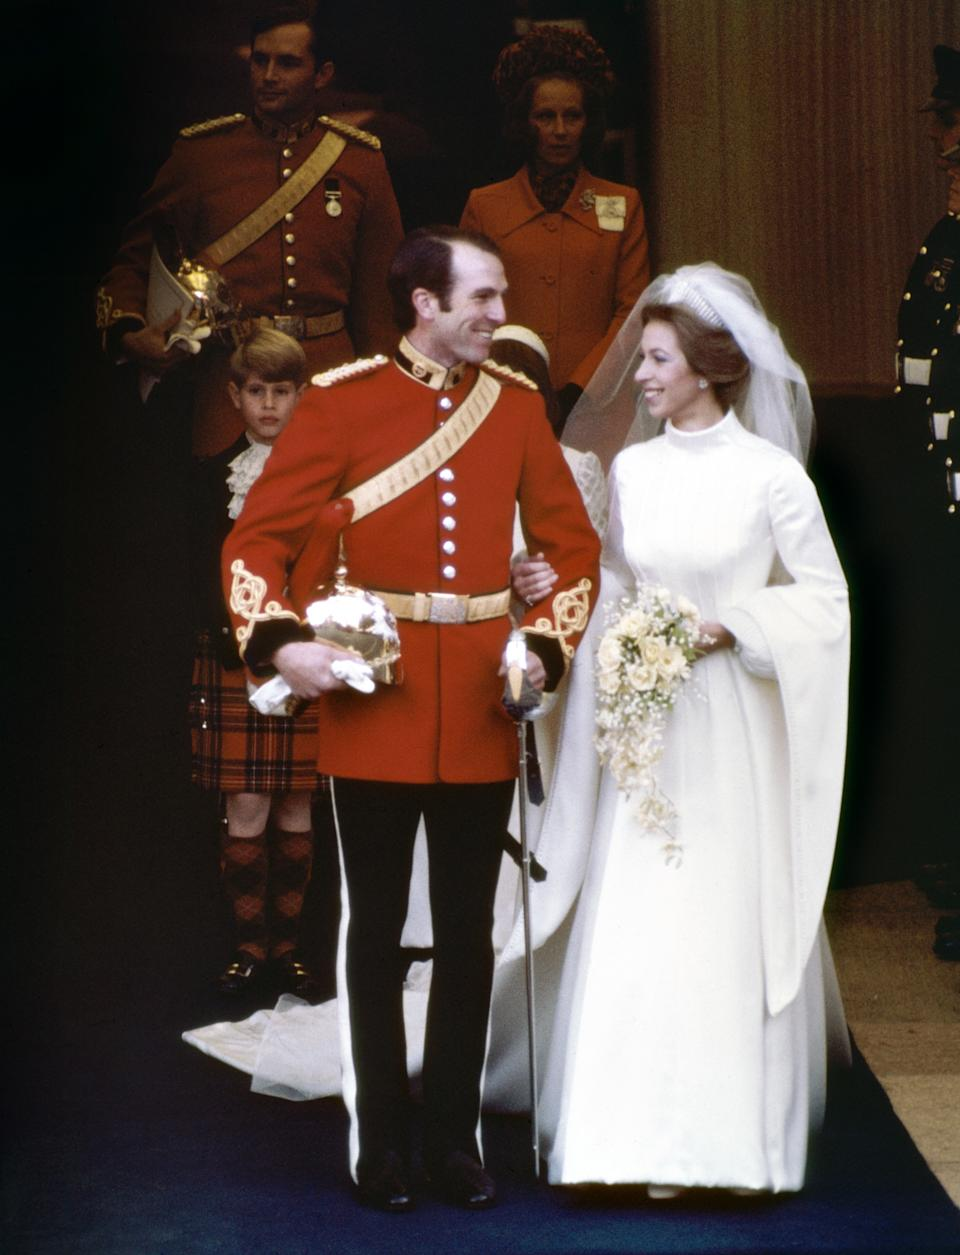 Princess Anne gave off '70s vibes with her first wedding dress as she married Captain Mark Phillips in a high-neck, wide-sleeved white dress in 1973.